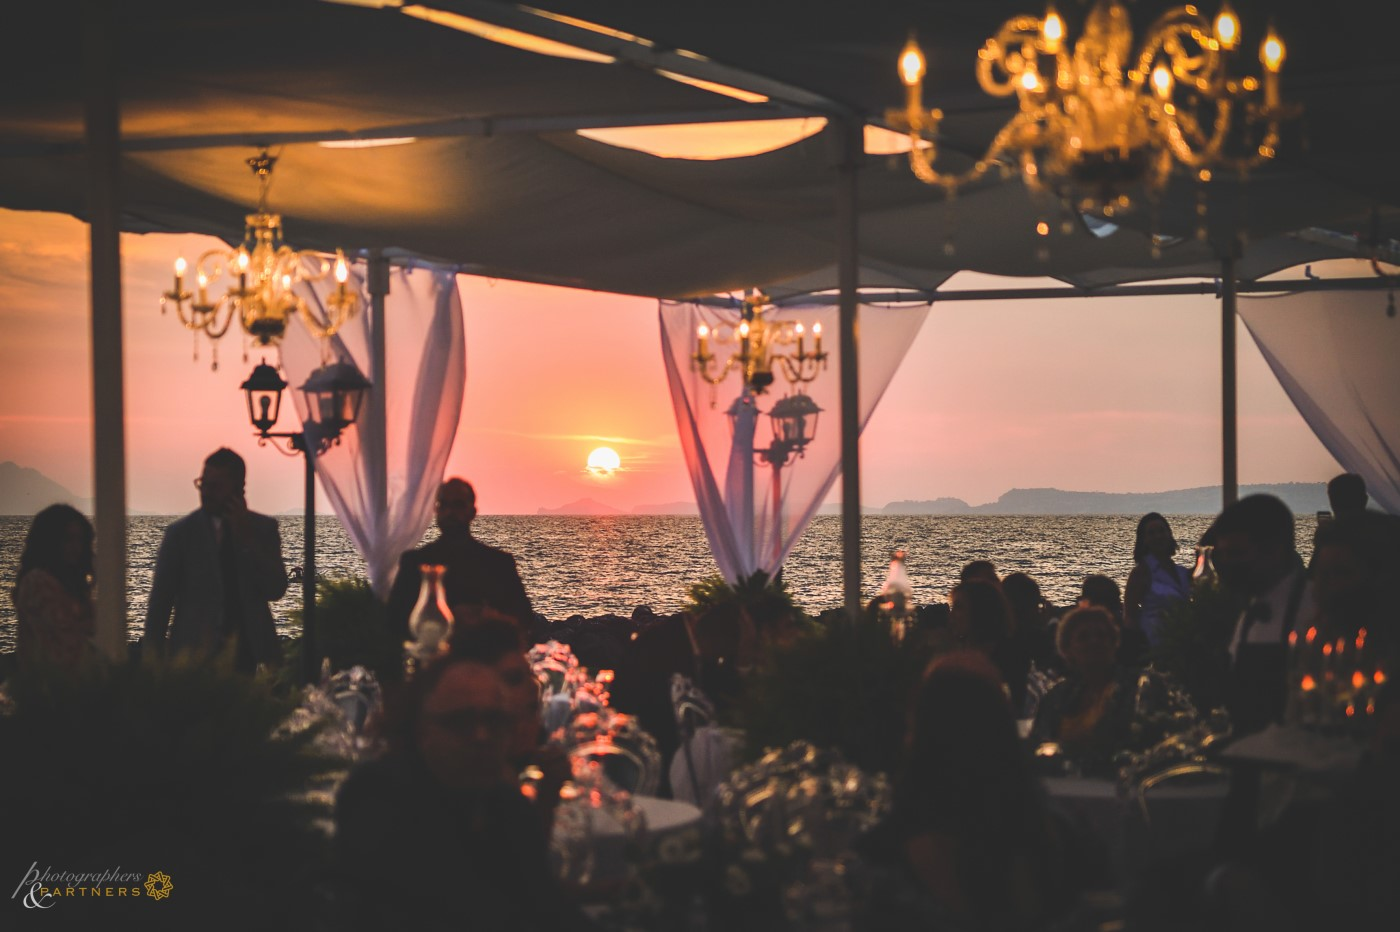 The spectacular sunset seen from the terrace.